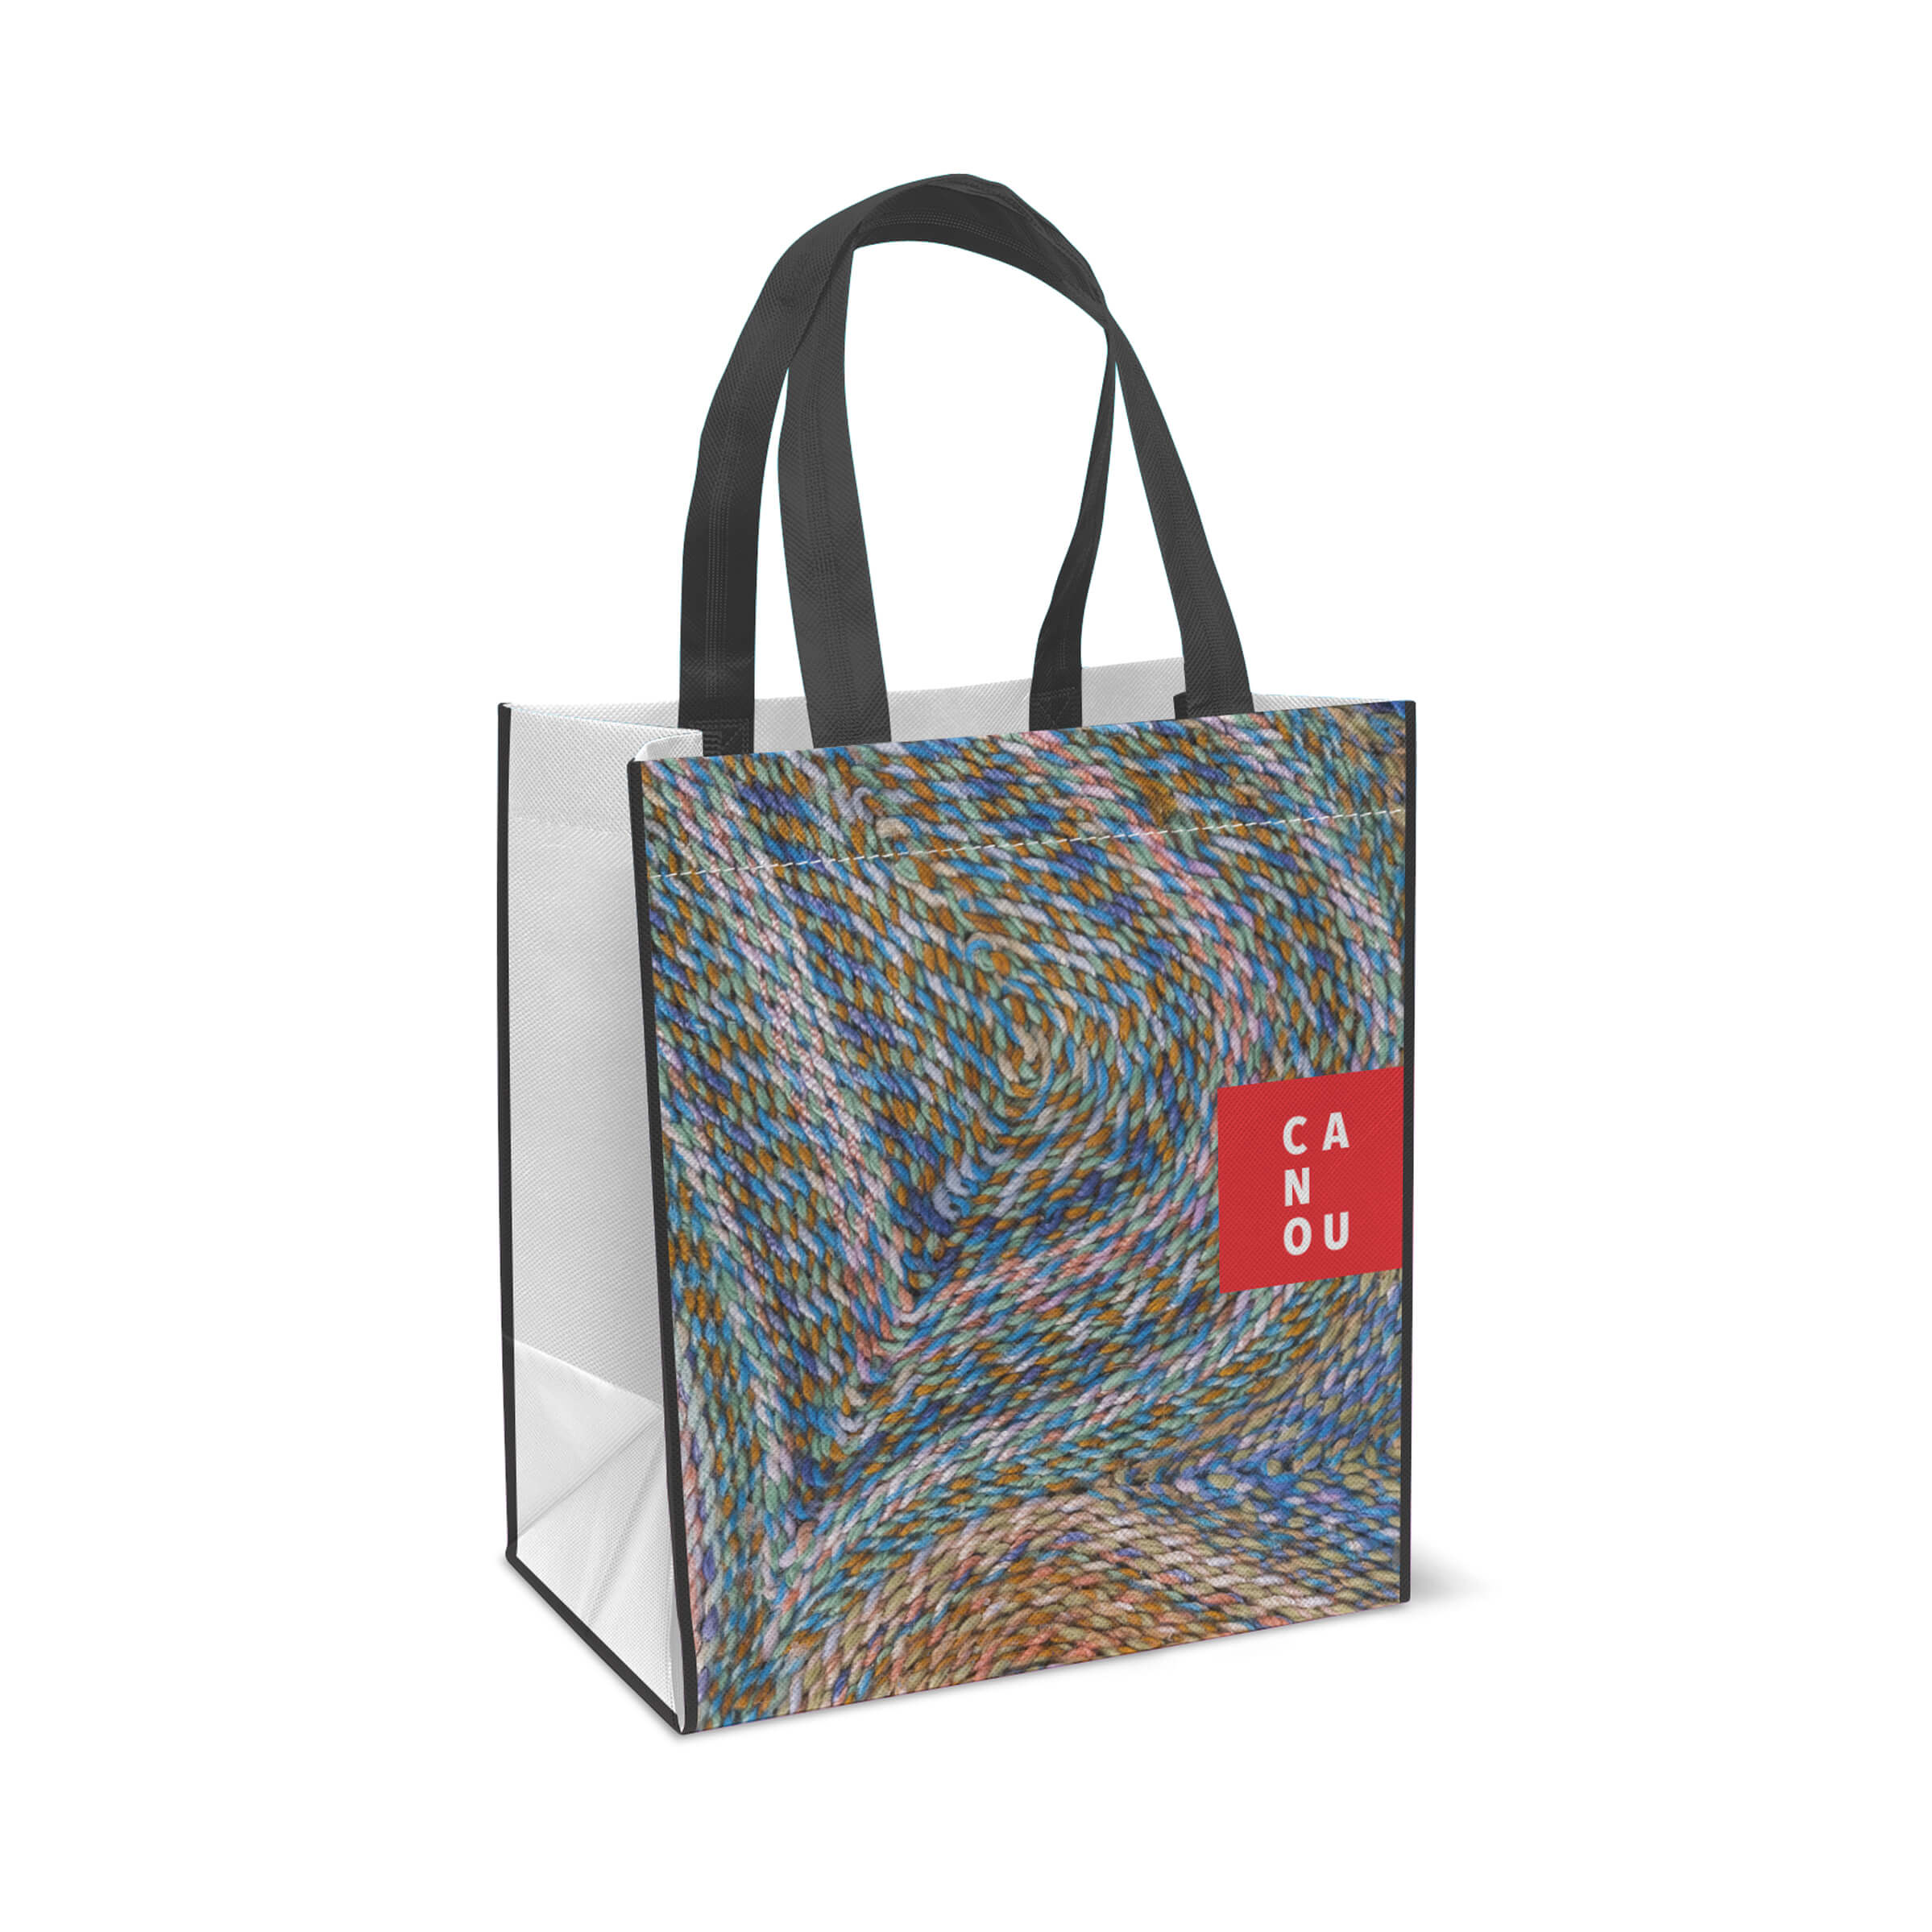 Shopping Bag for Canou, a Québec product manufacturer, by Ottawa Graphic Design Studio idApostle